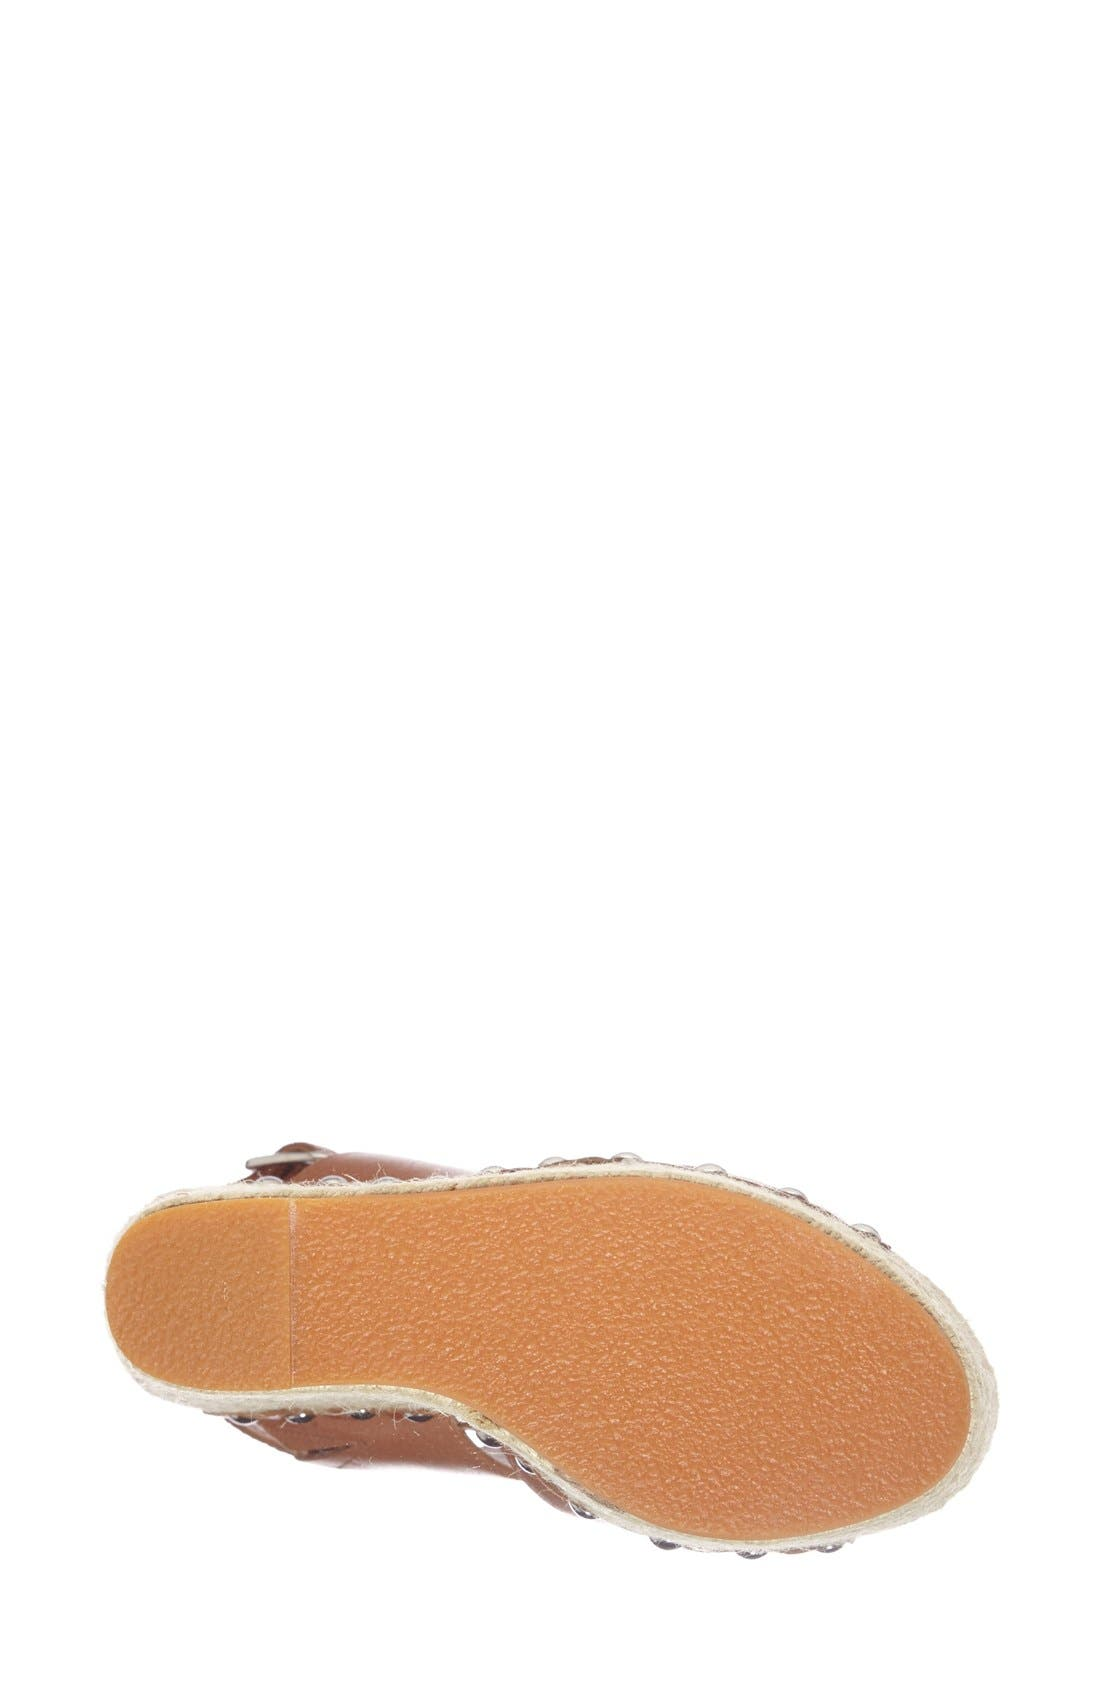 Alternate Image 4  - Steve Madden 'Jummbo' Espadrille Wedge Sandal (Women)